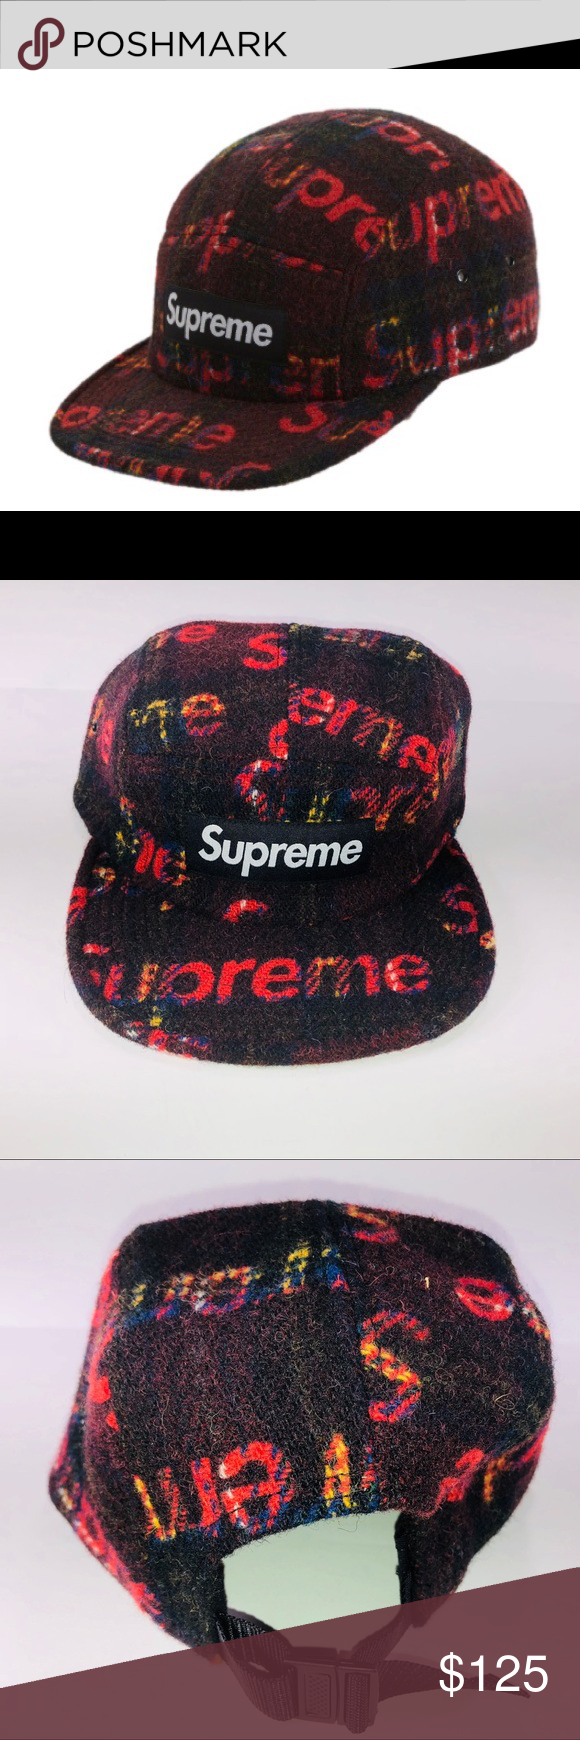 66fb771aca5ca Supreme Harris Tweed Camp Cap Red Plaid FW18 H11 One Size Supreme  Accessories Hats